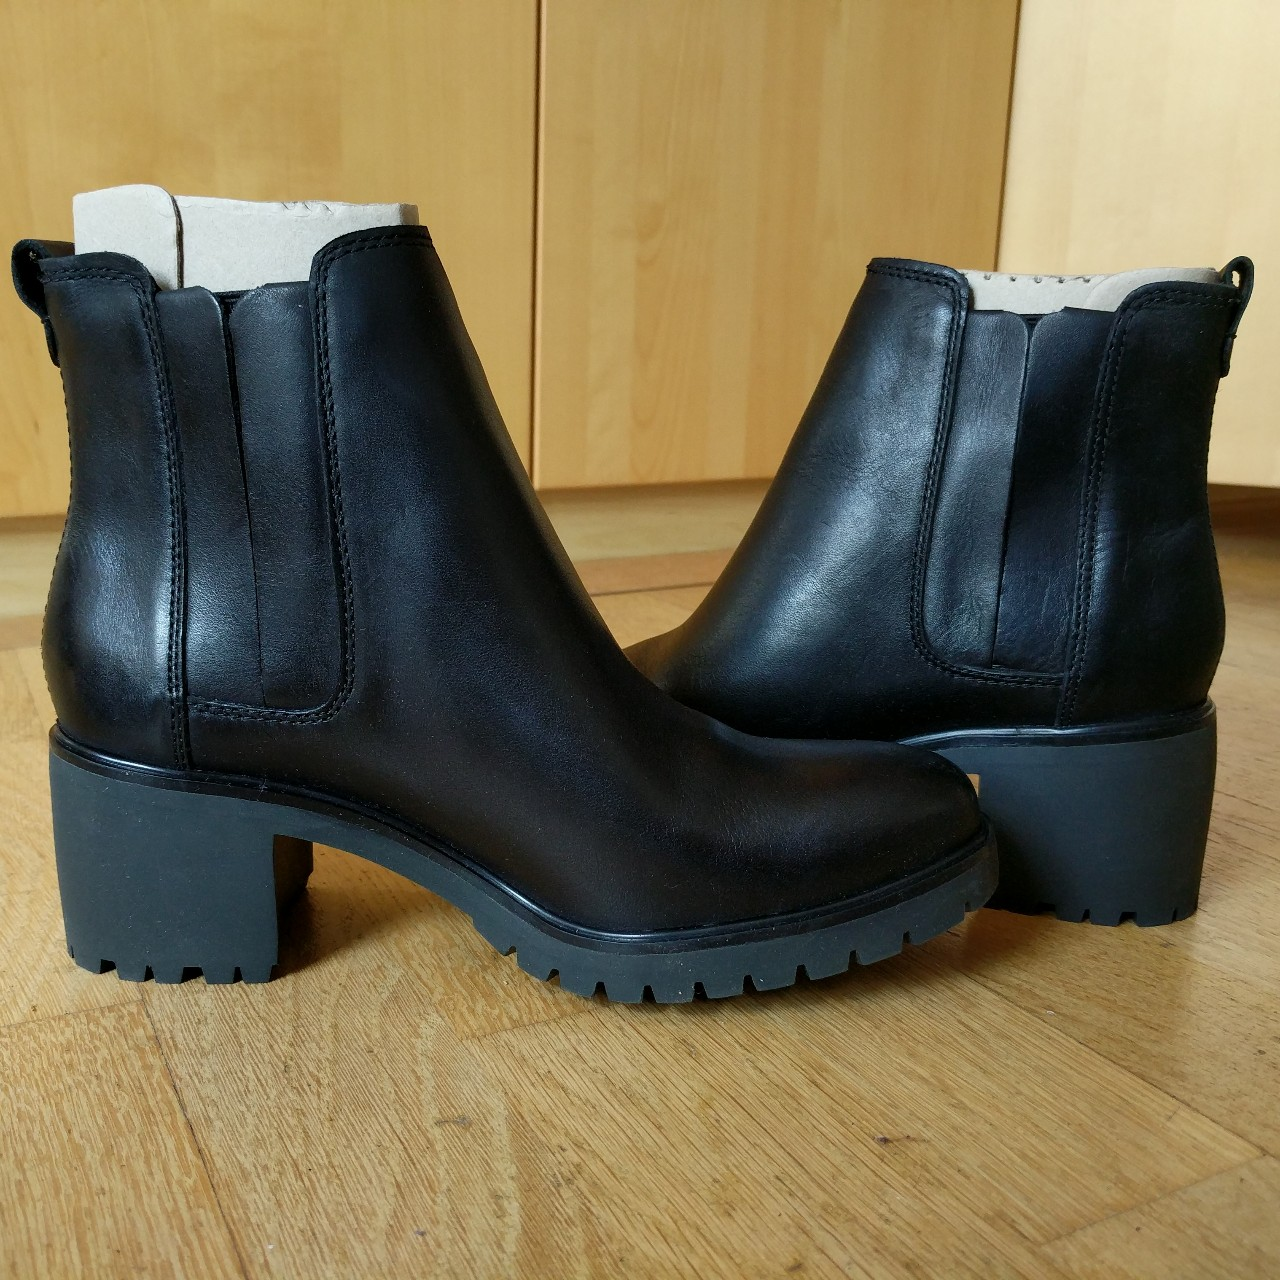 Black heeled Timberland boots, never worn (again) as Depop